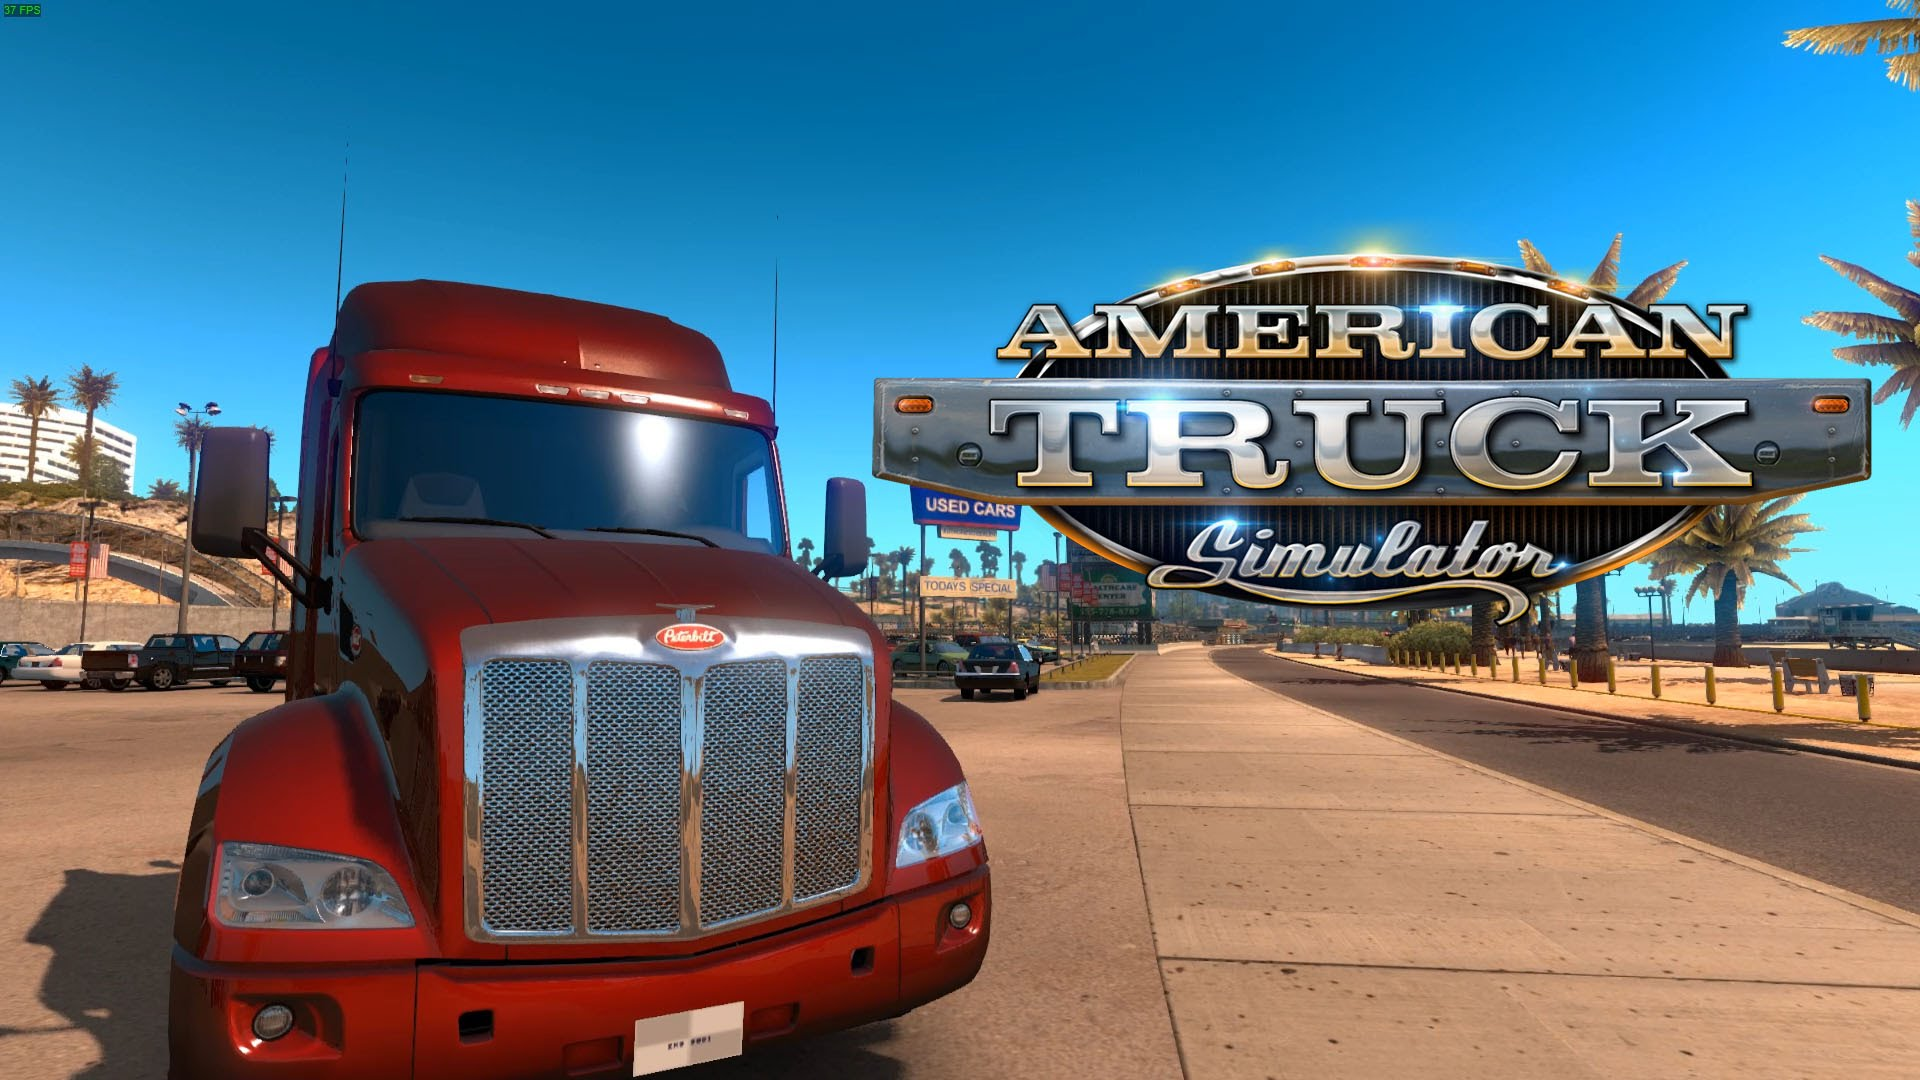 American Truck Simulator 1.2 Open Beta